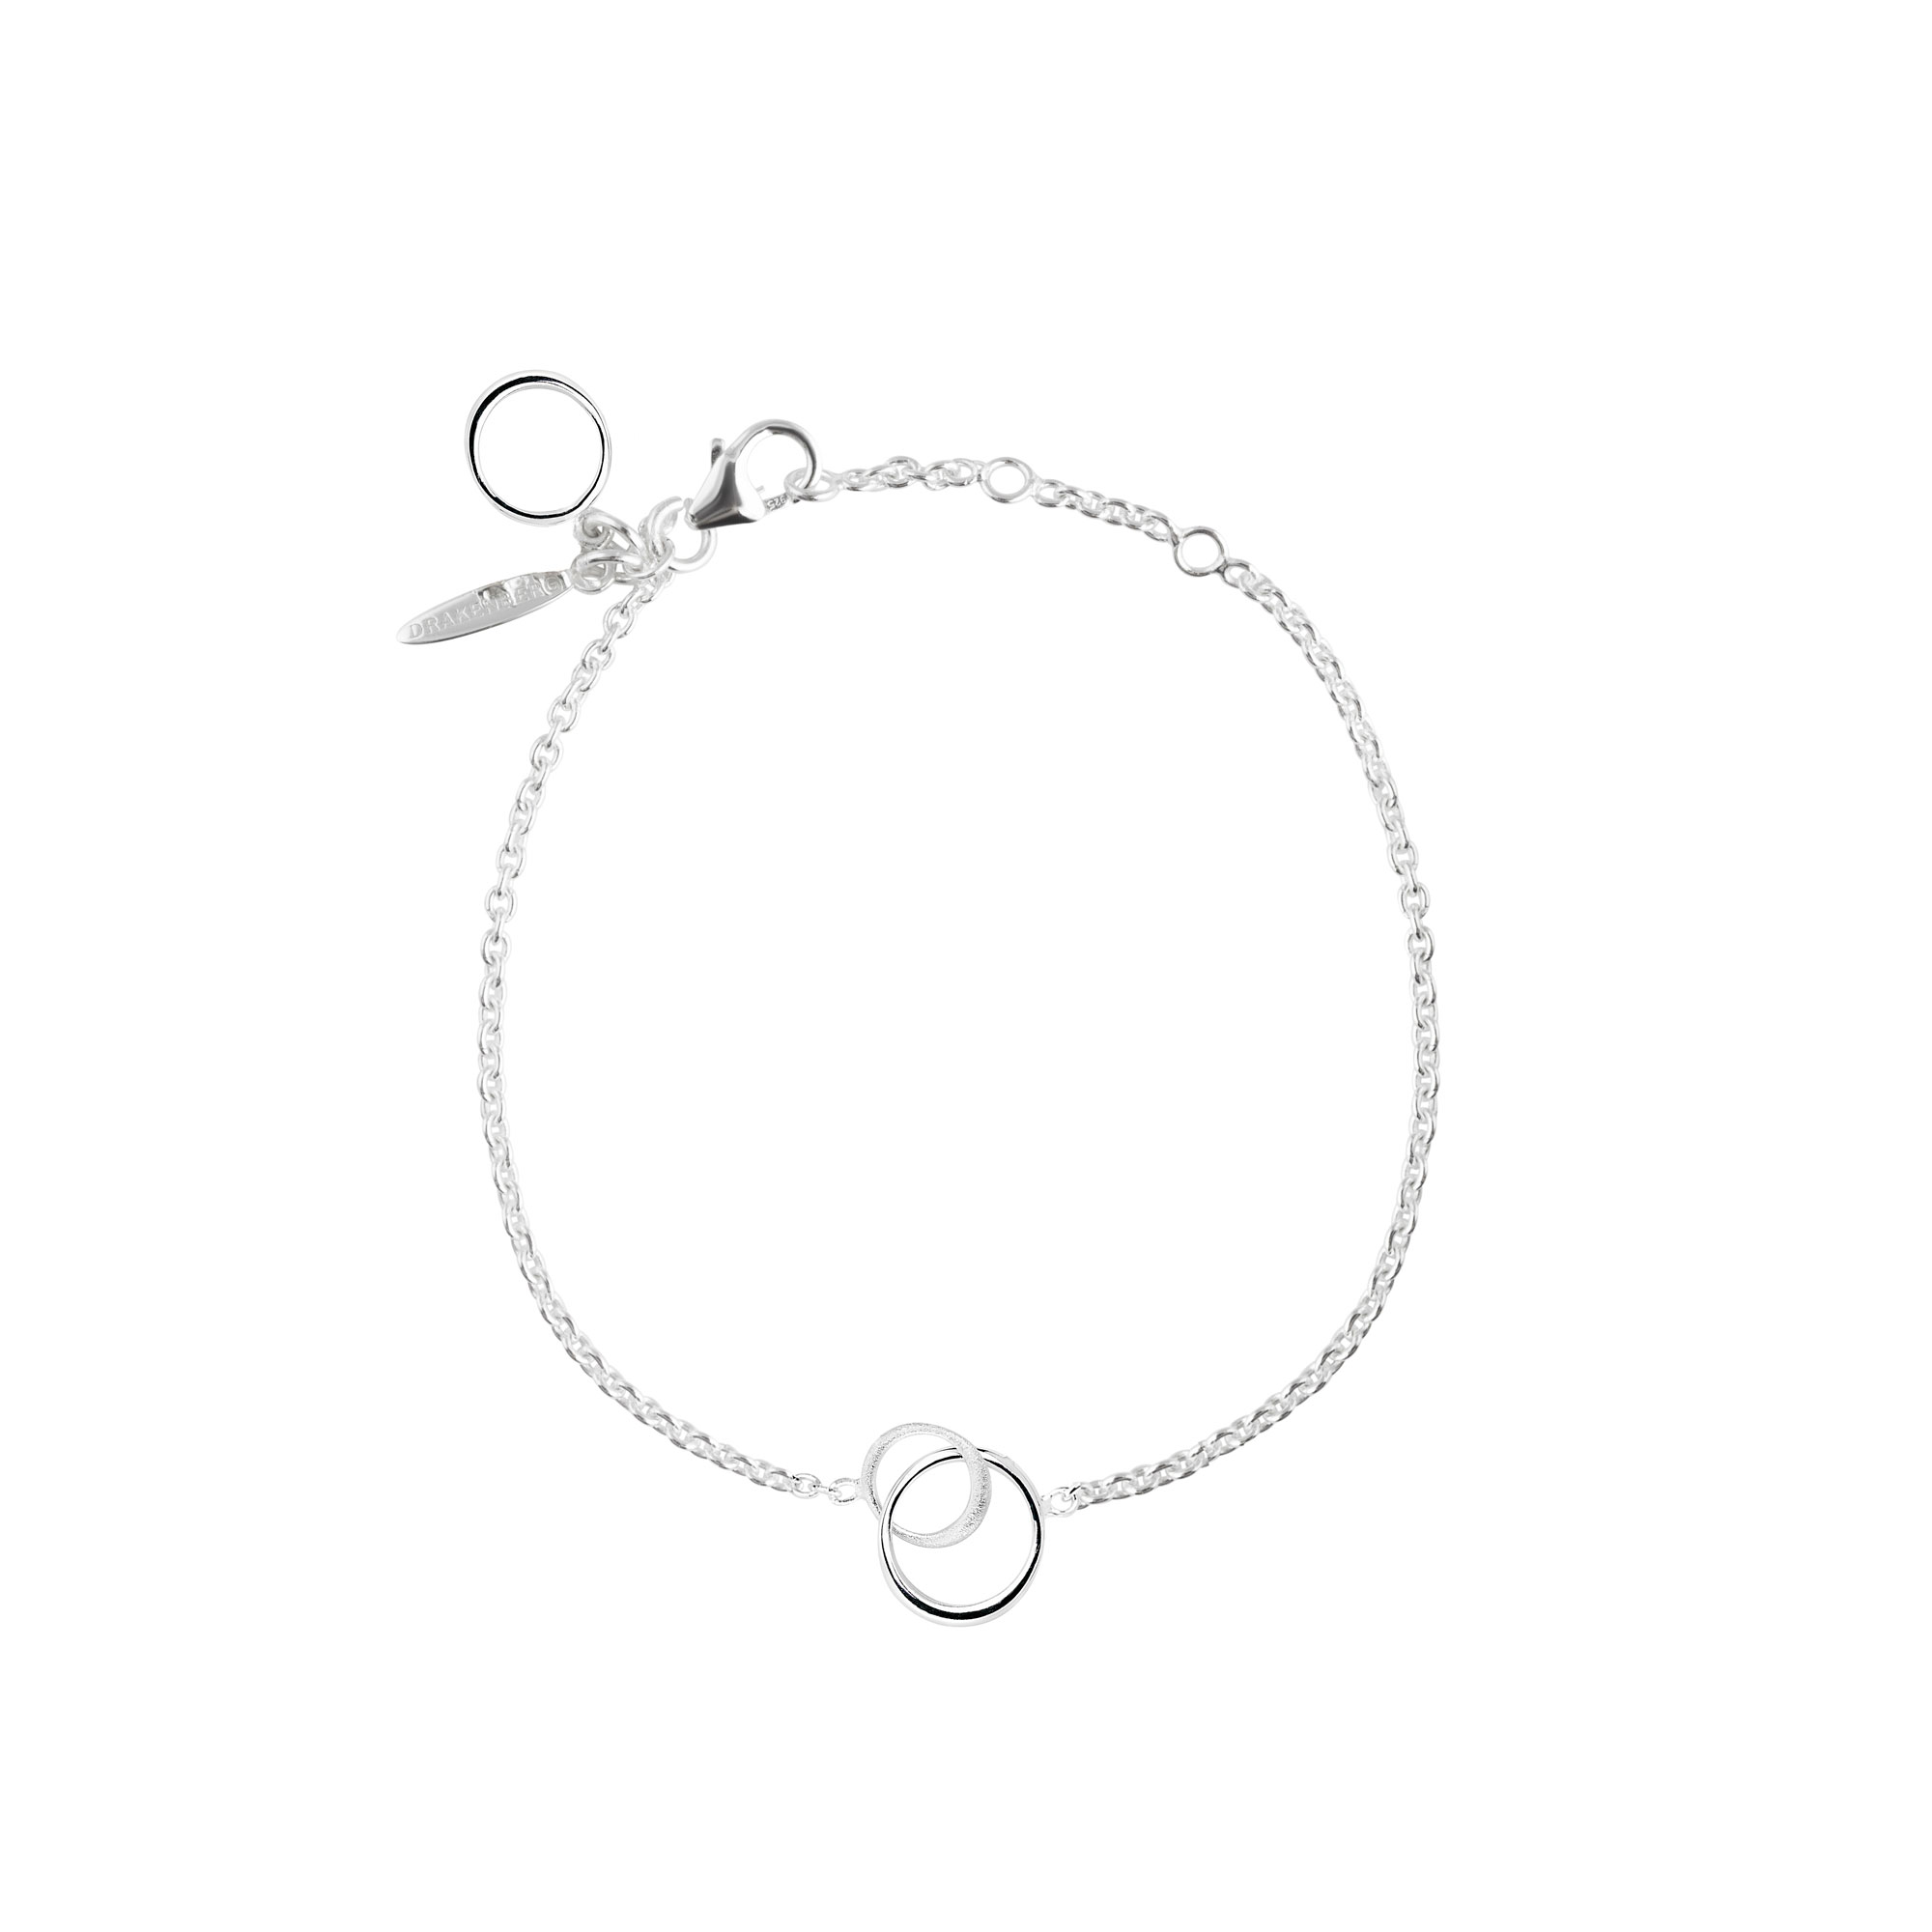 Les amis small single bracelet